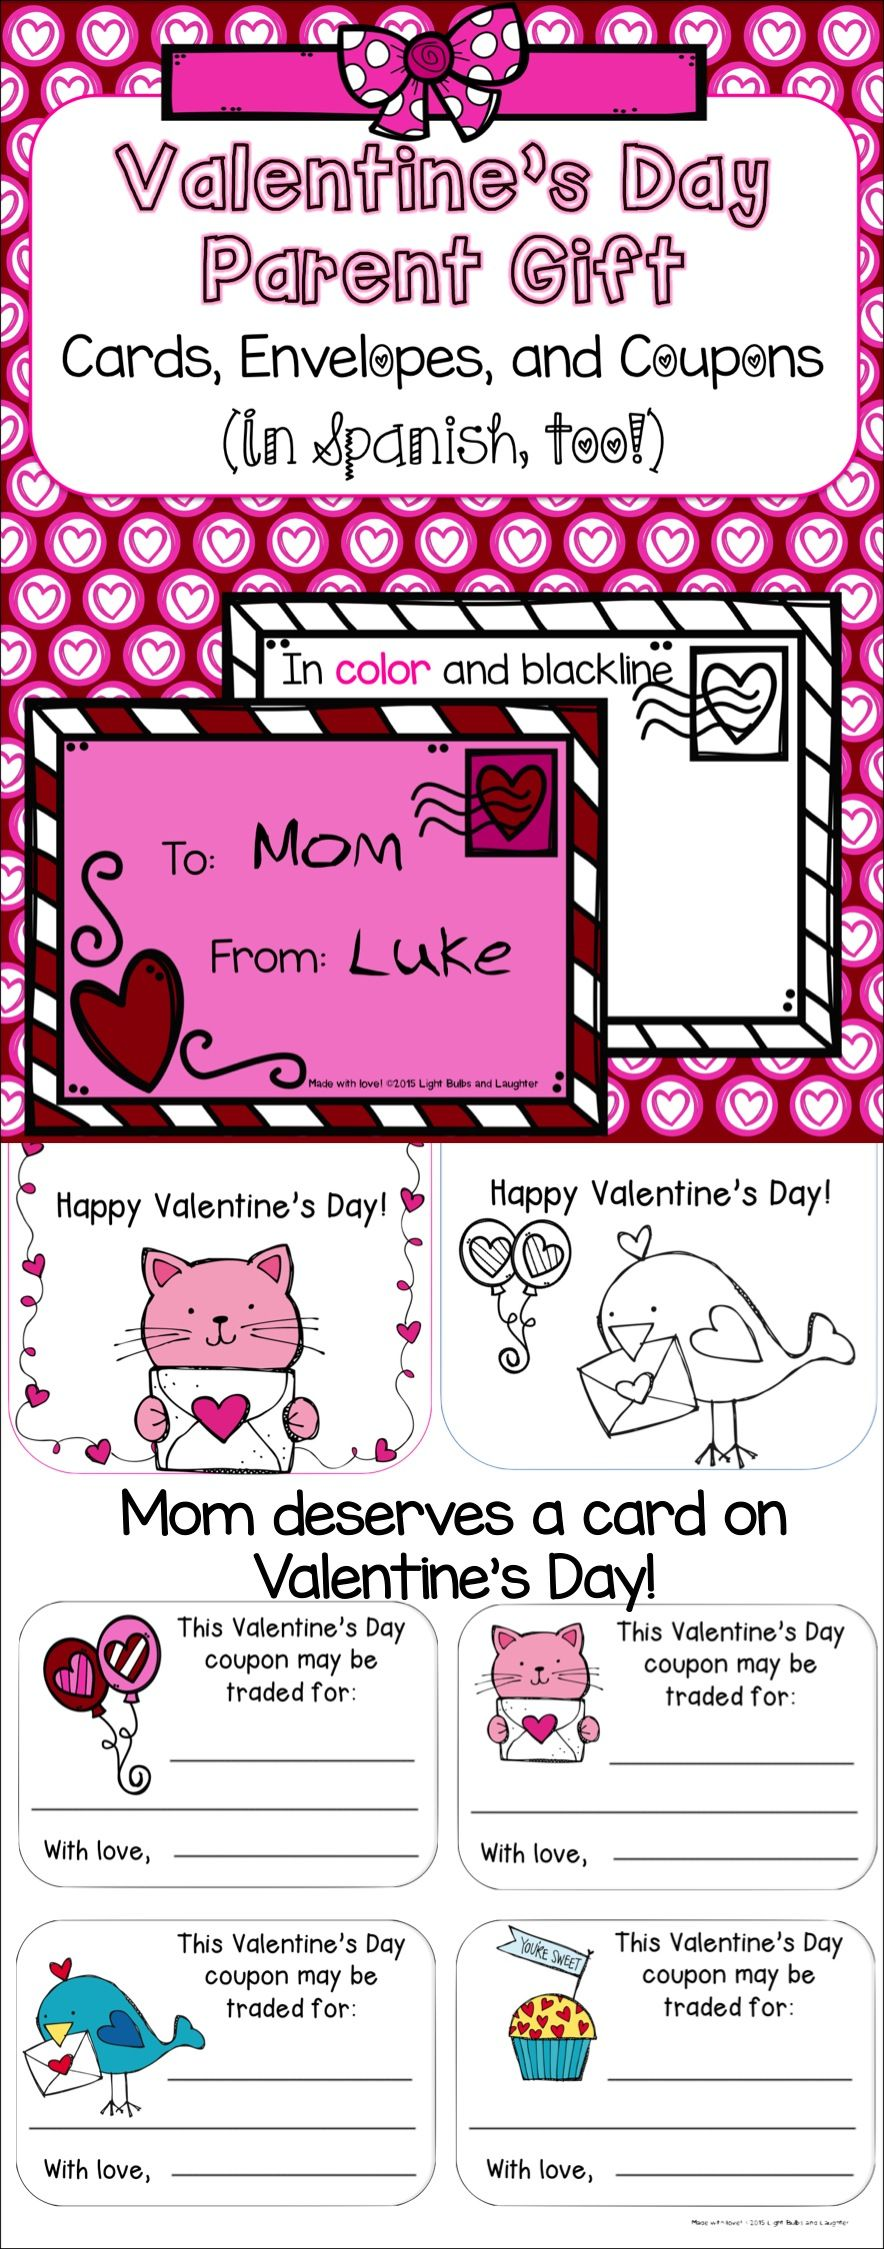 ValentineS Day Parent Gift  Cards Envelopes  Coupons In